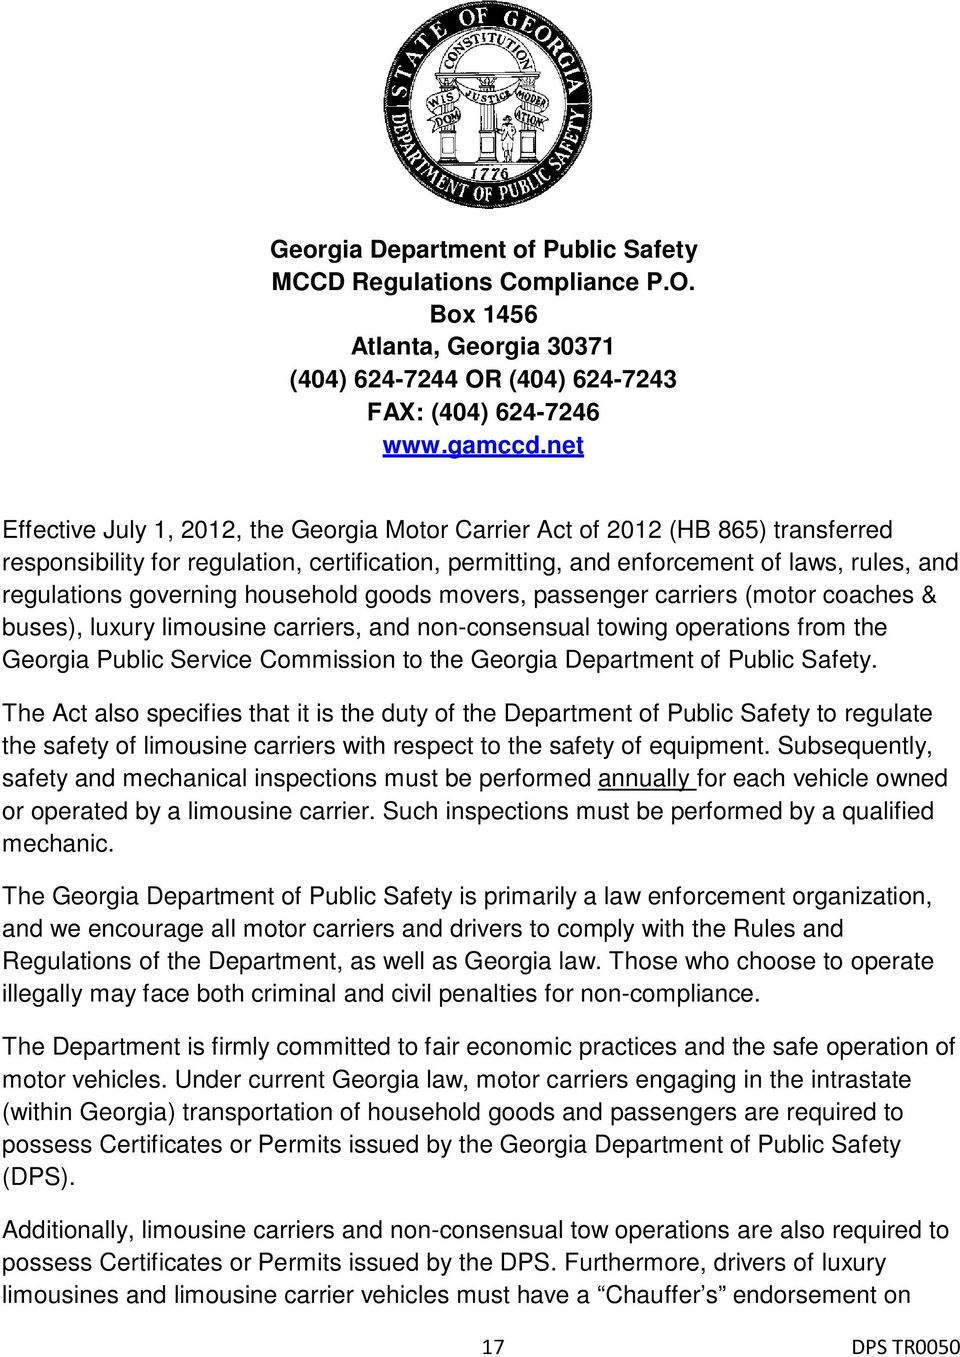 governing household goods movers, passenger carriers (motor coaches & buses), luxury limousine carriers, and non-consensual towing operations from the Georgia Public Service Commission to the Georgia